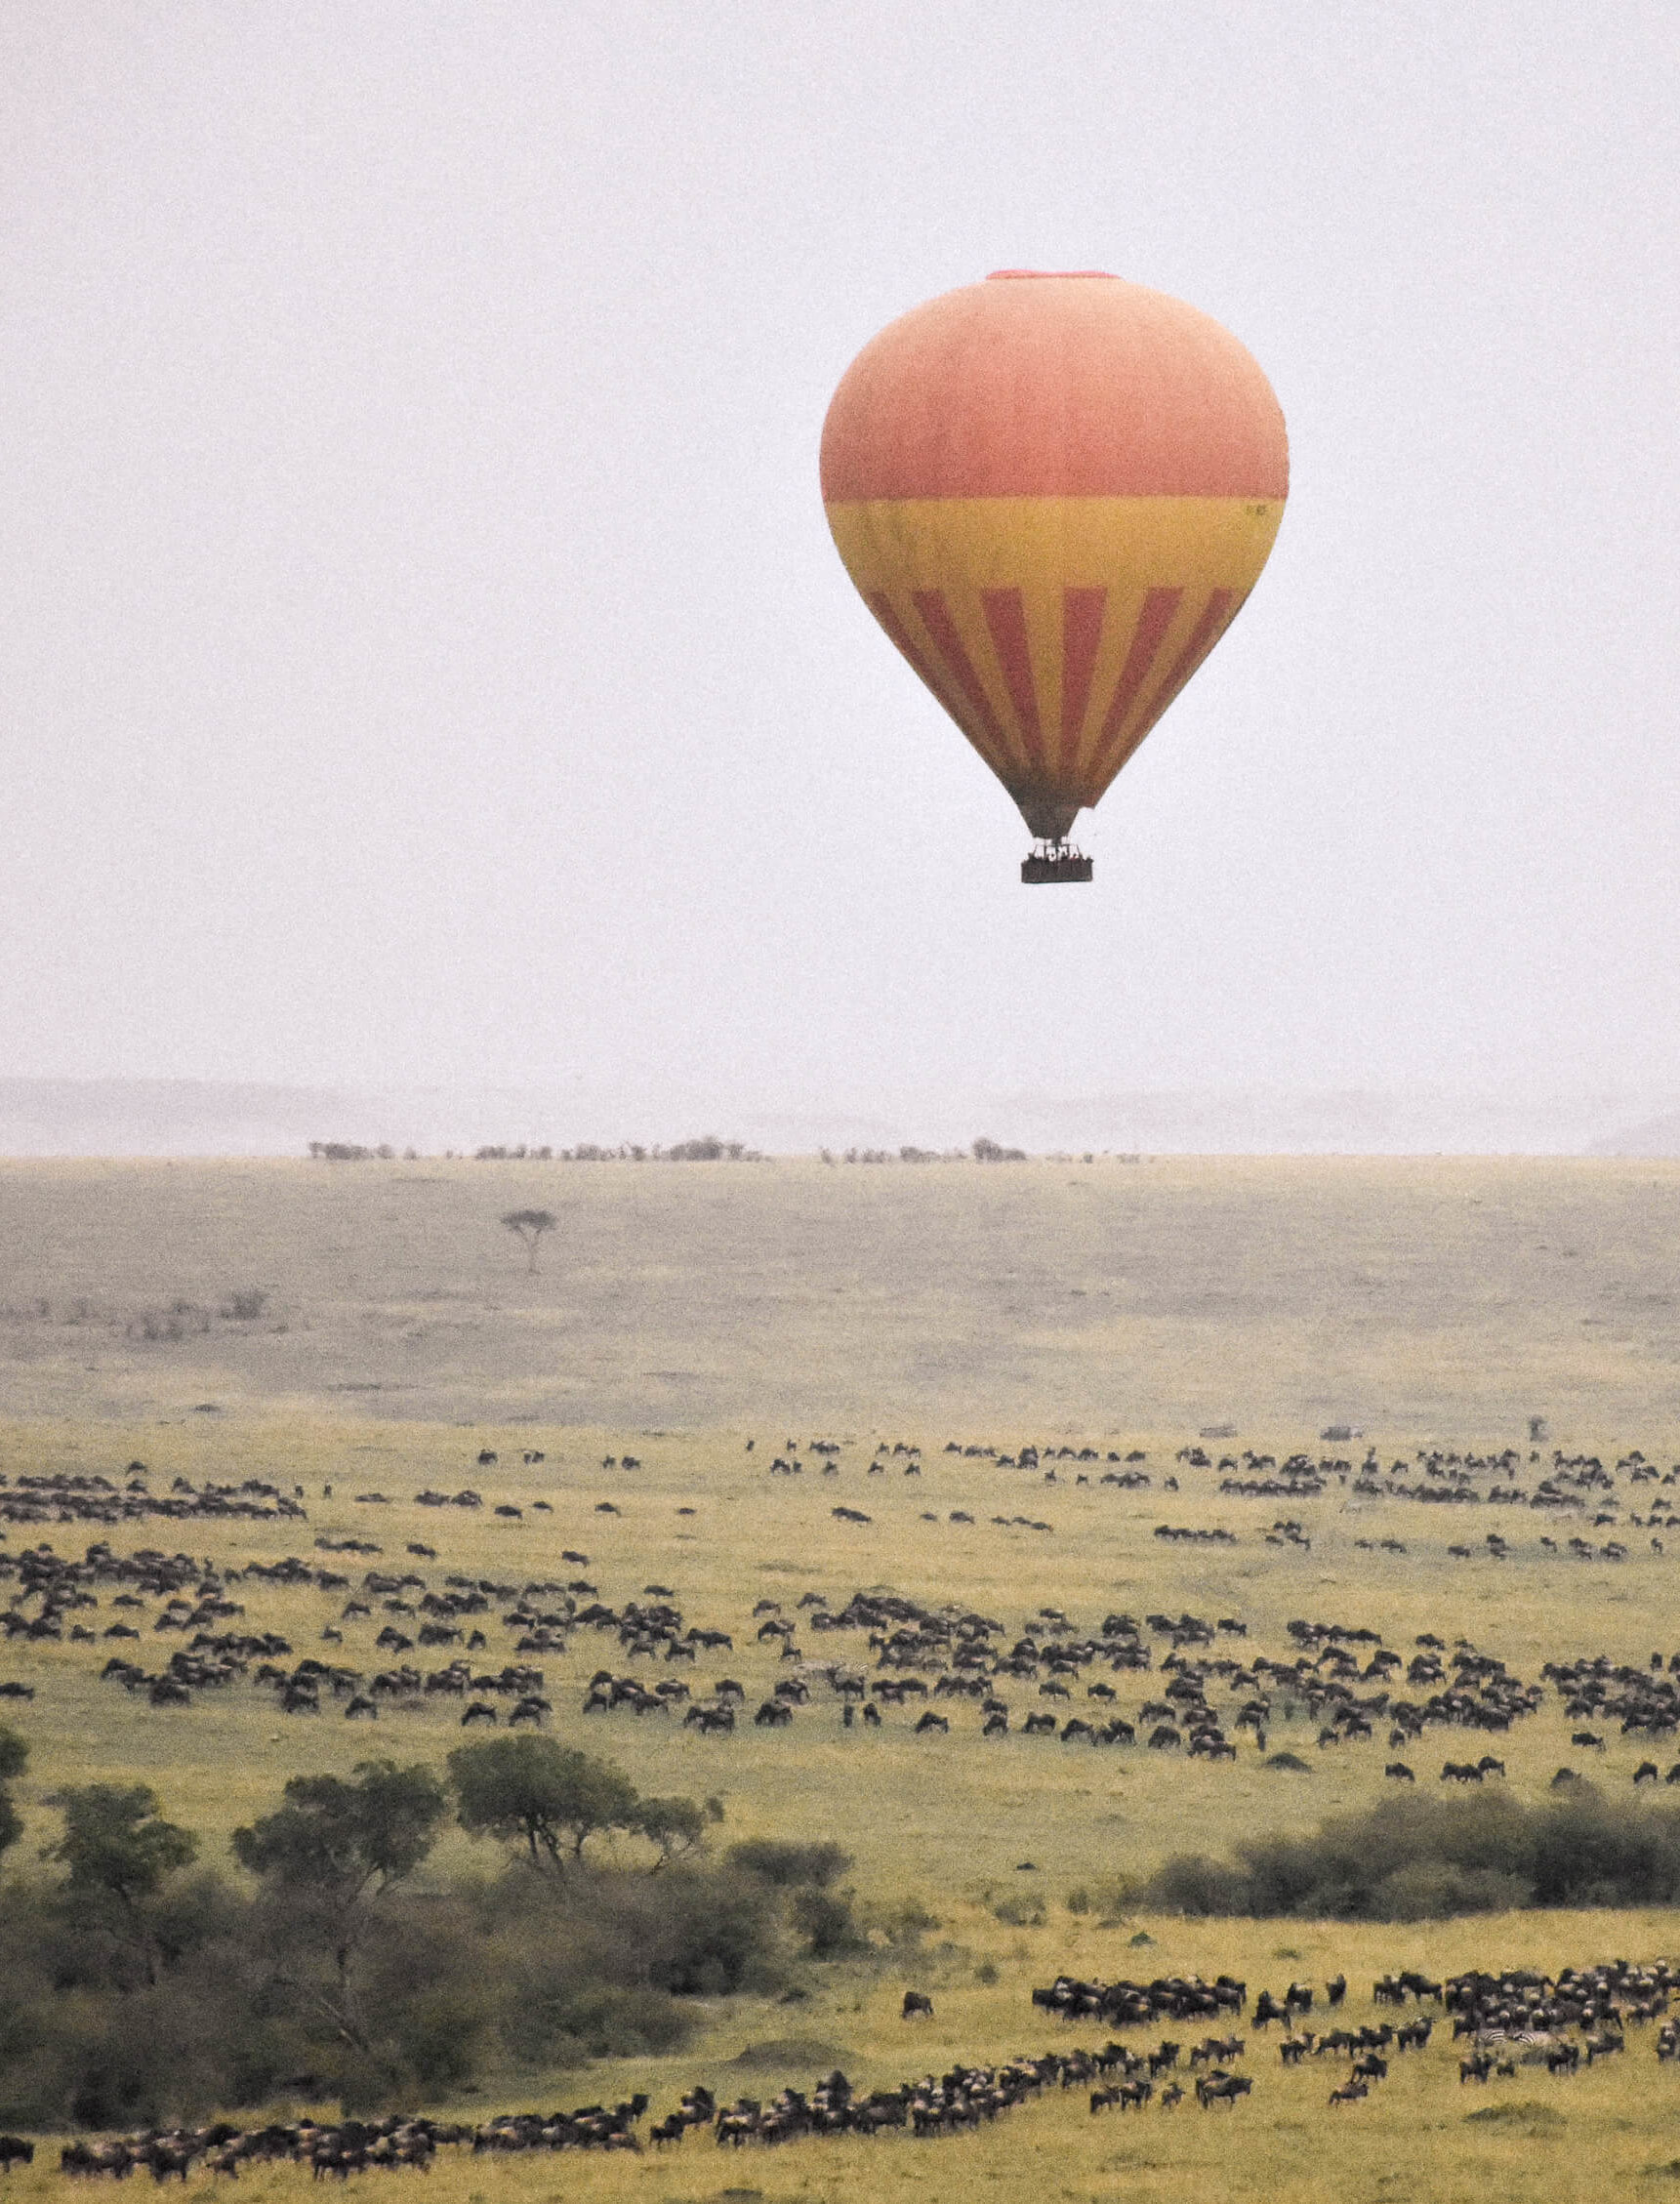 An orange hot air balloon flying above wildebeest as they migrate through the Maasai Mara ( Maasai Mara Balloon Safari )